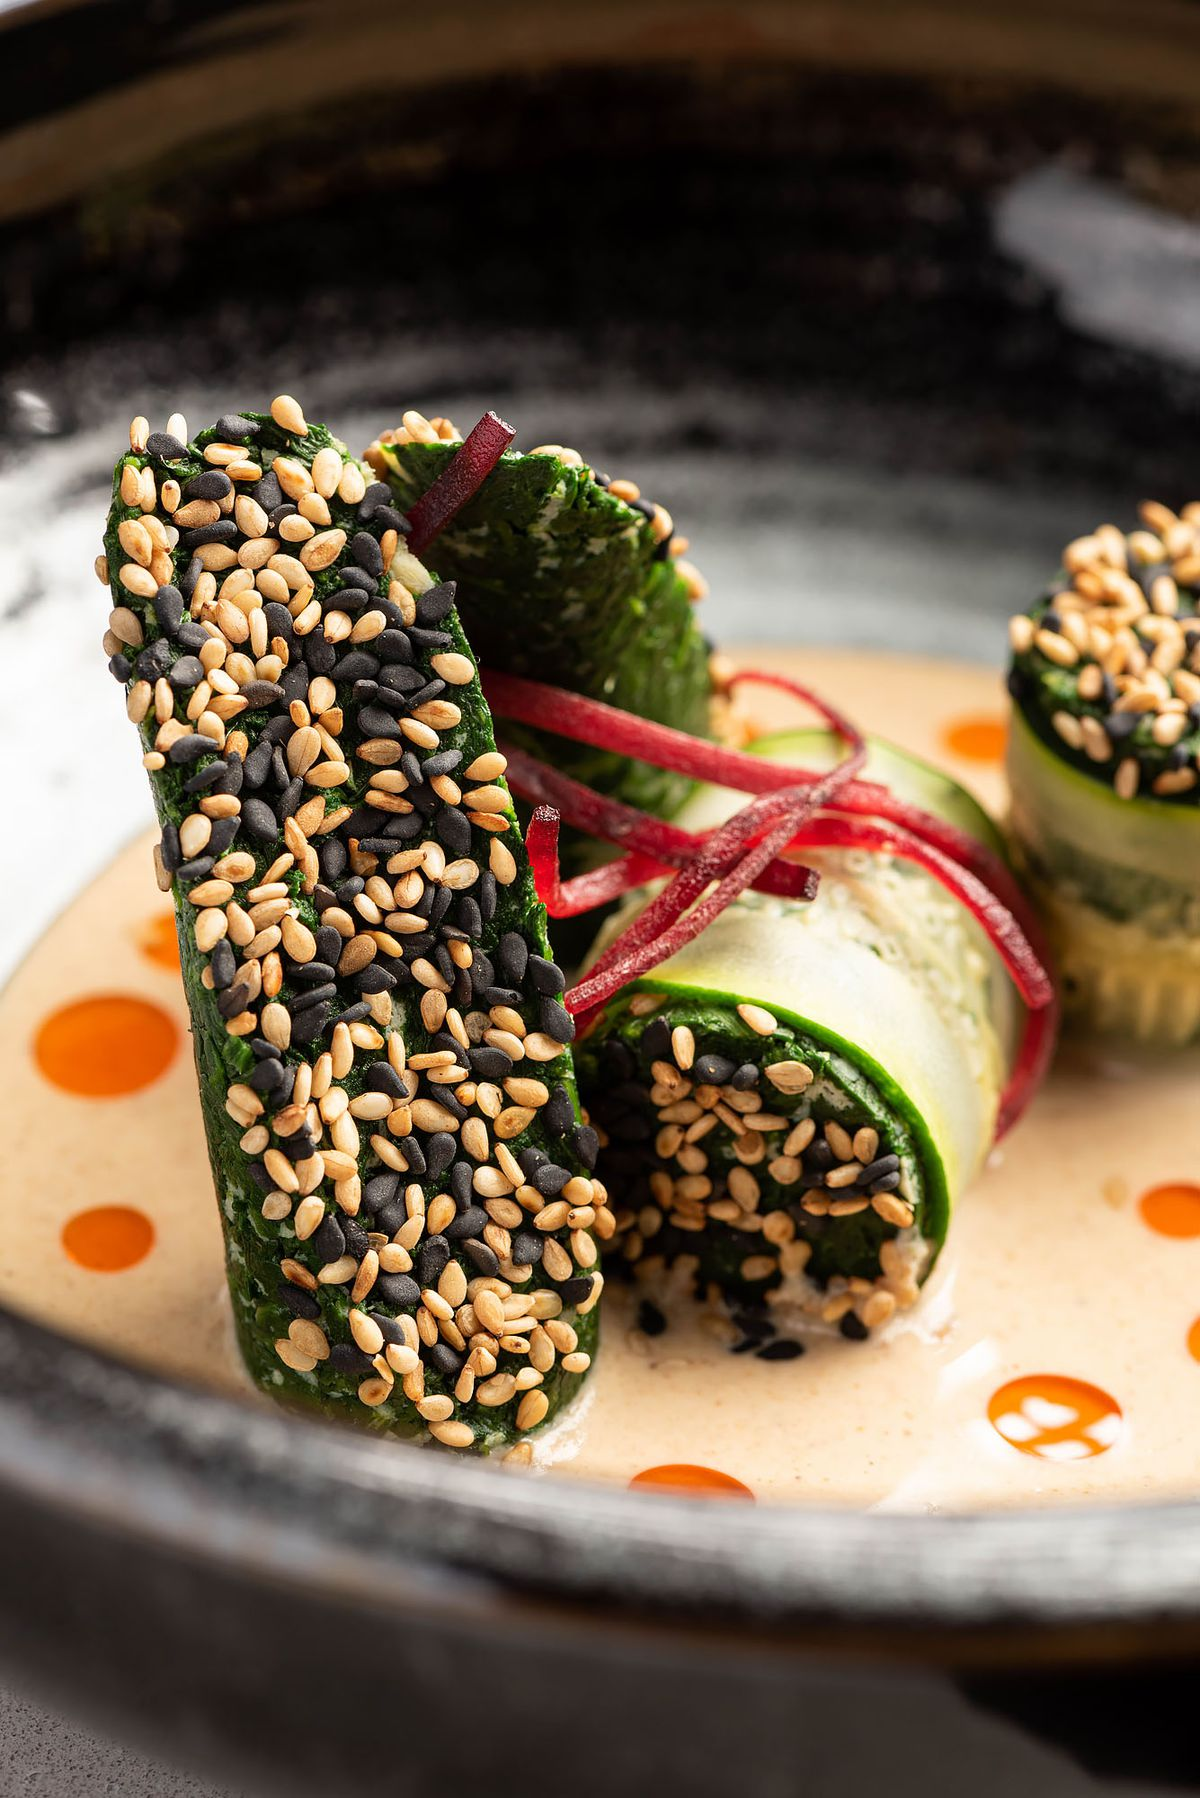 Compressed spinach salad with sesame seeds and sesame dressing.